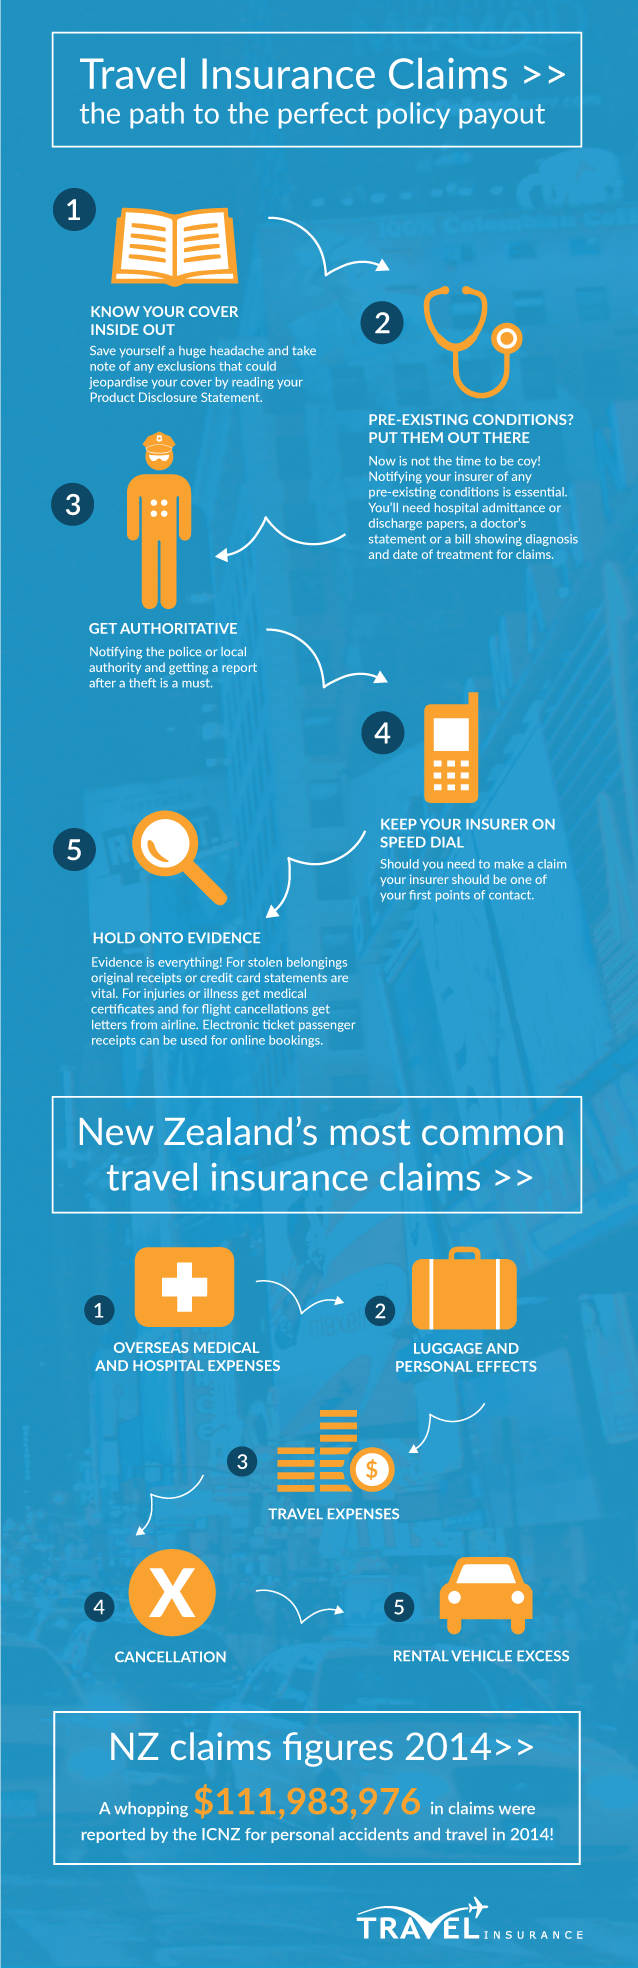 Travel Insurance Claims - the Path to a Perfect Policy Payout